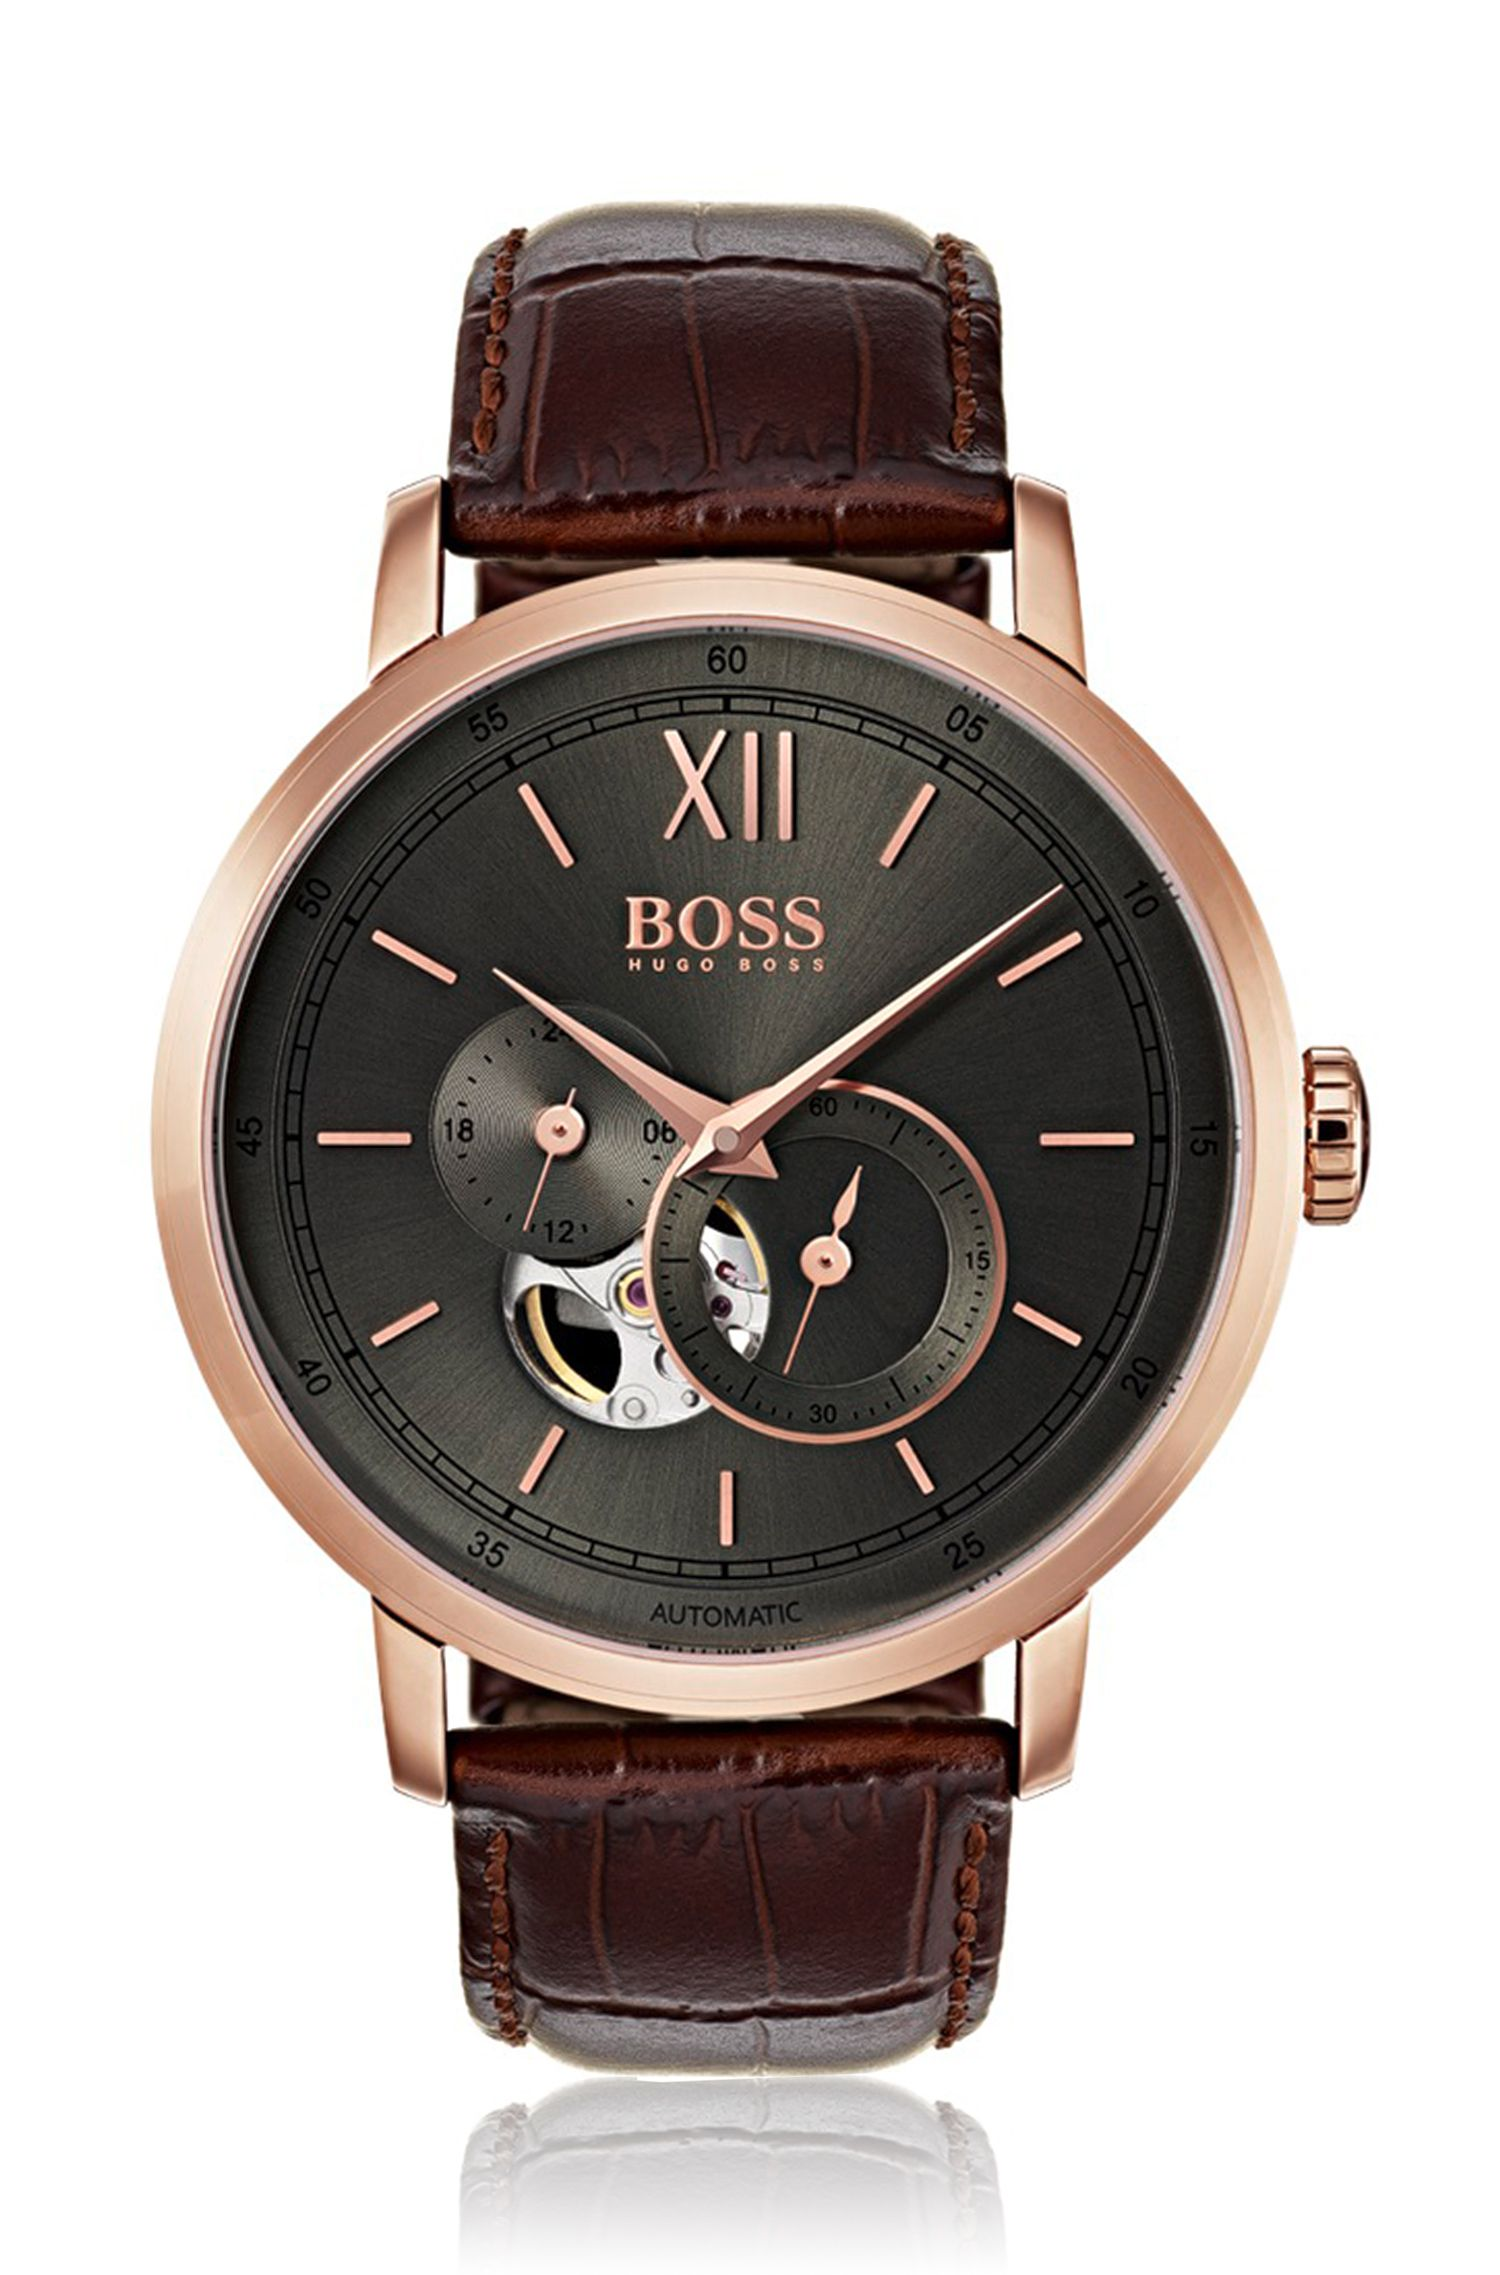 Rose-gold-plated watch with visible mechanics